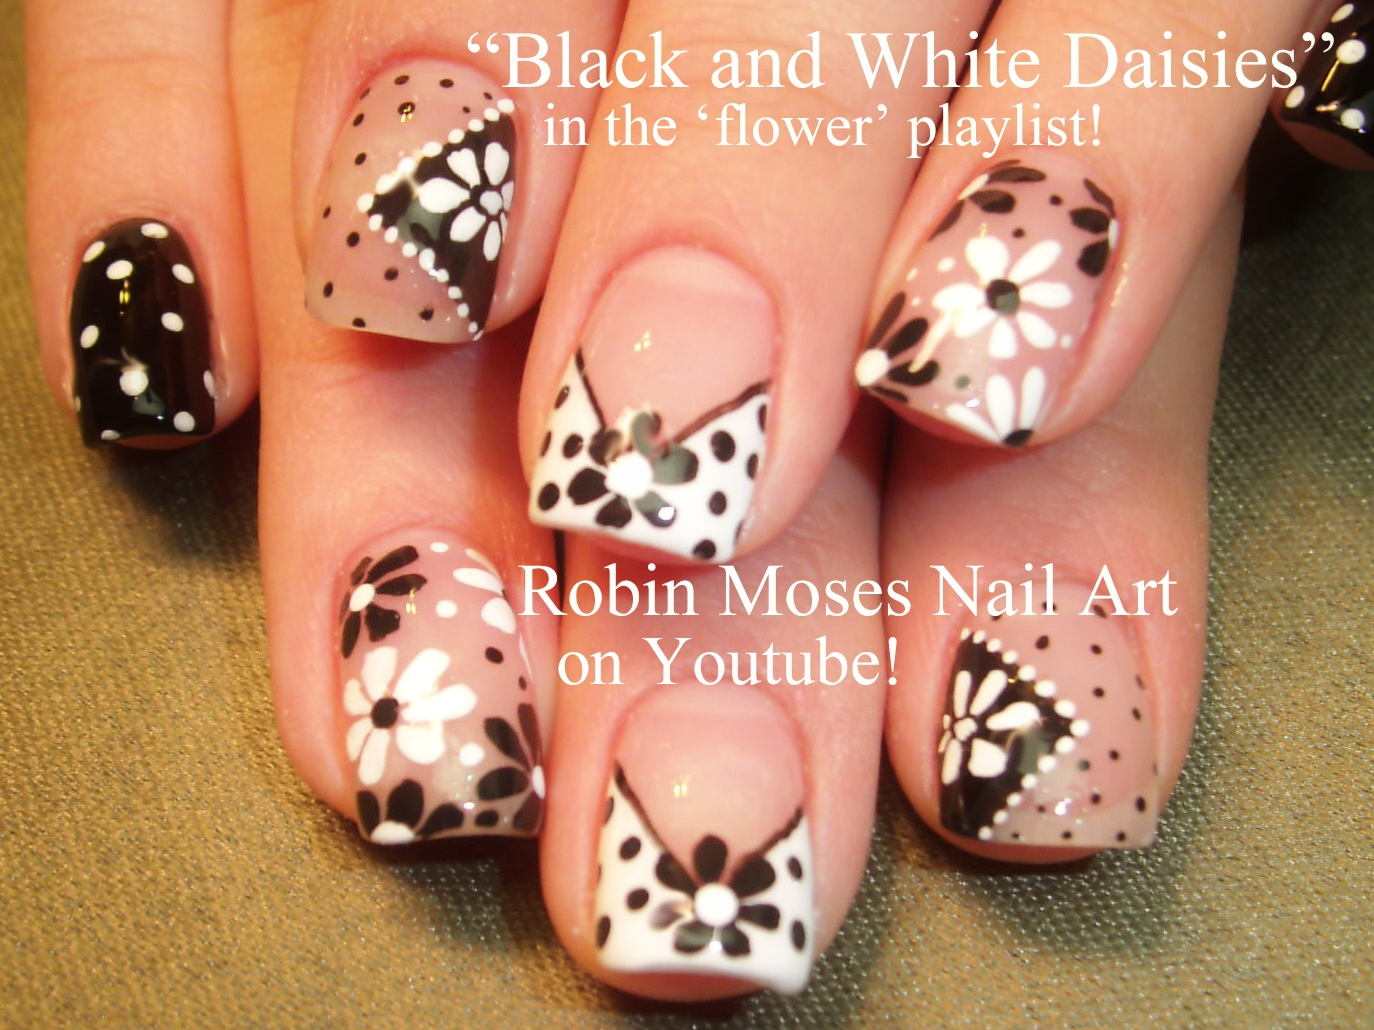 Nail Art By Robin Moses Daisy Nail Art On Navy Blue Tips Navy